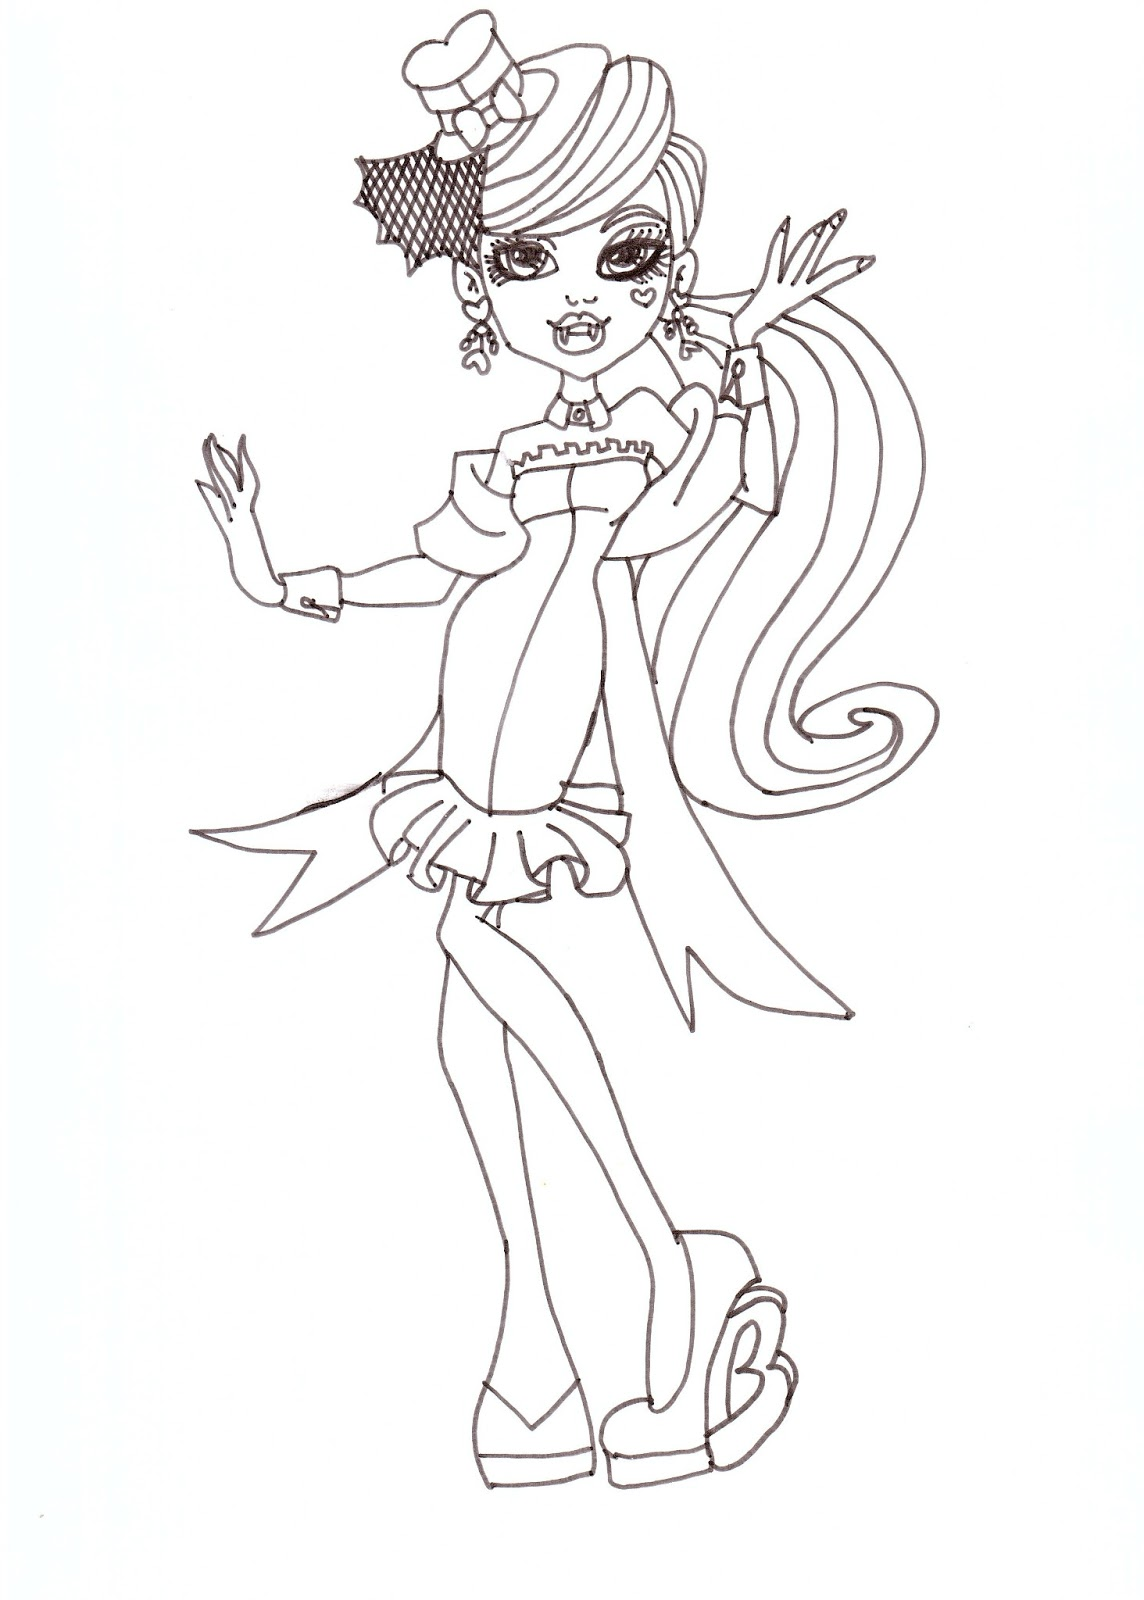 draculaura dawn of the dance coloring sheet - Draculaura Coloring Pages